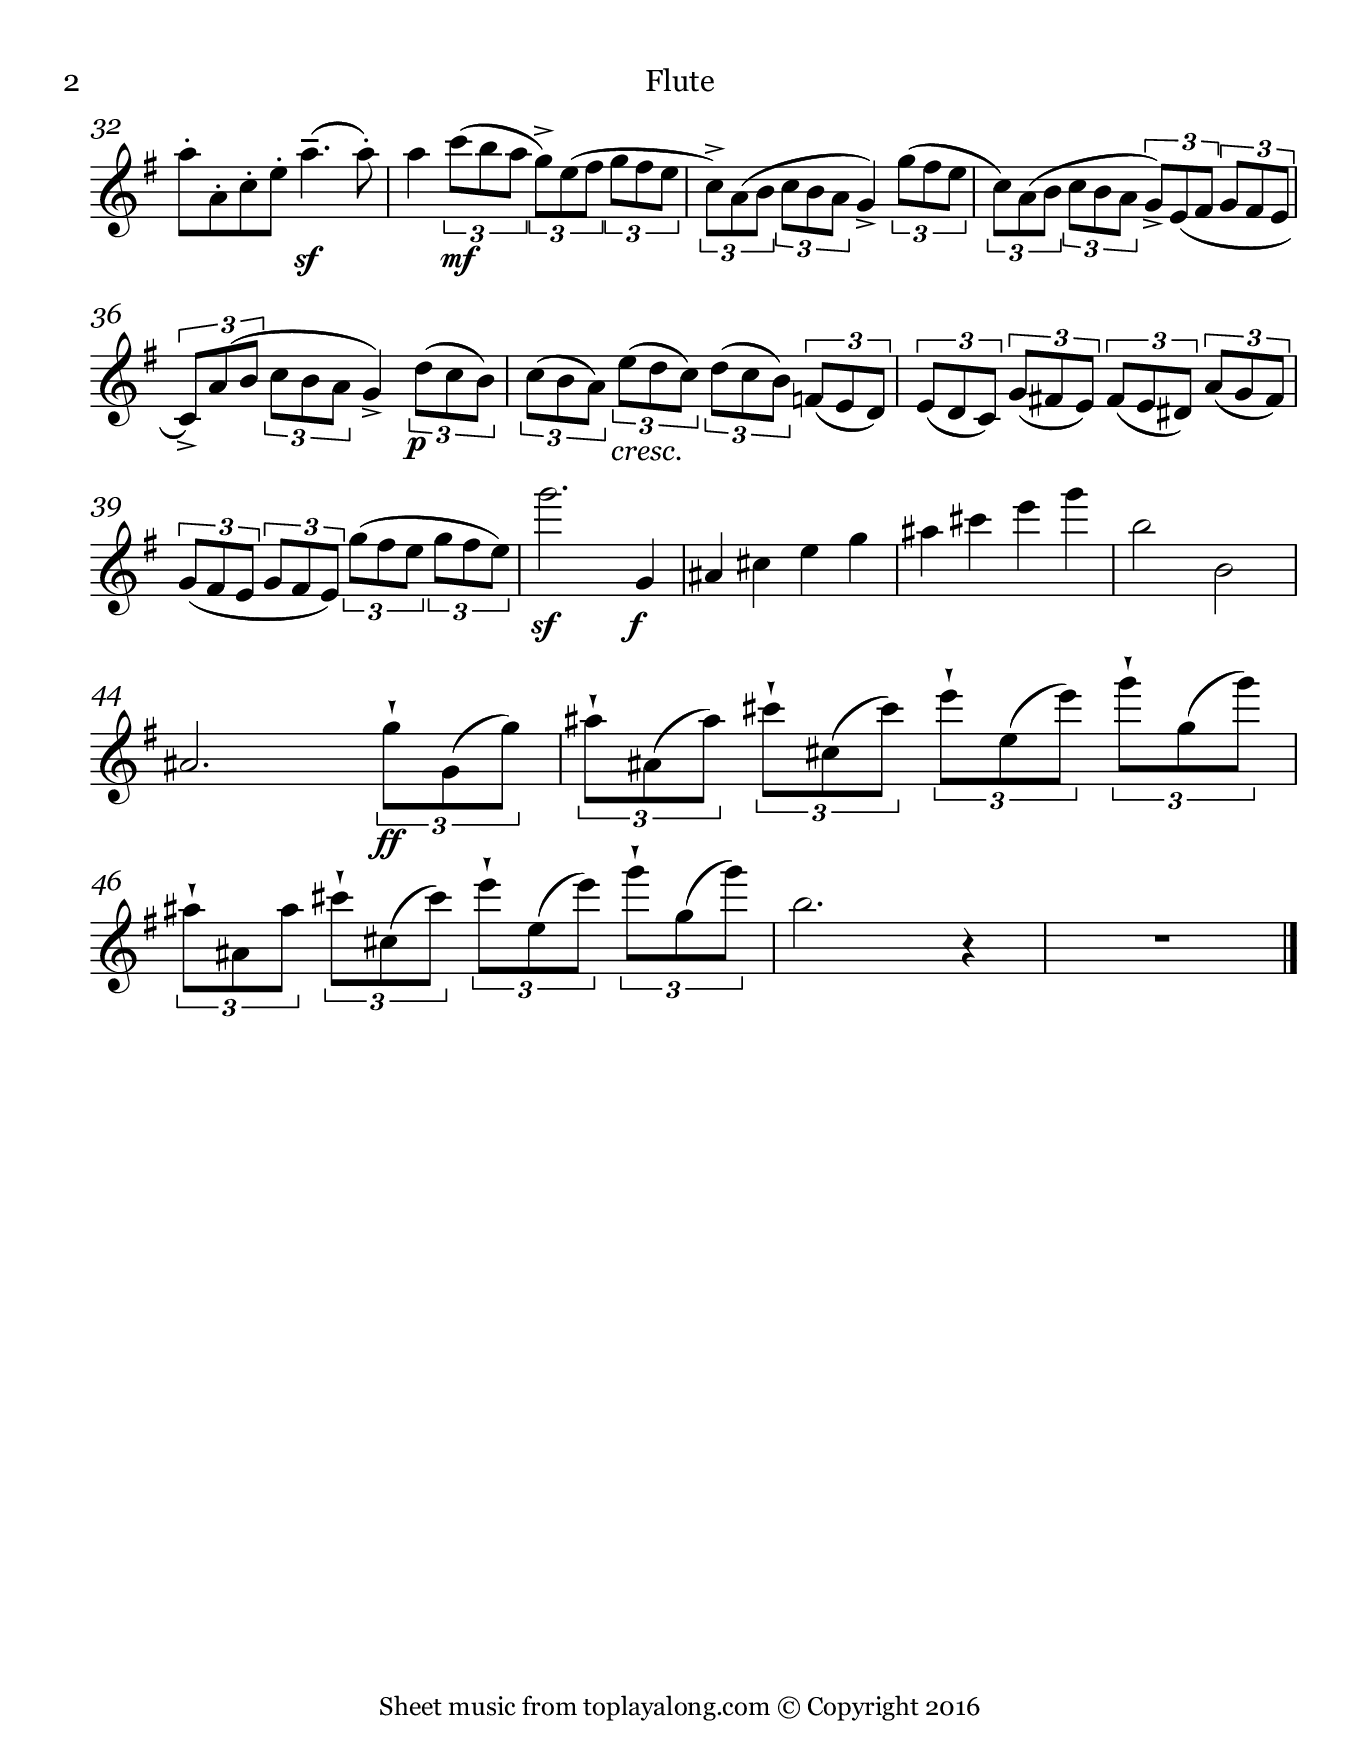 Violin Concerto in E minor, Op. 64 (Theme) by Mendelssohn. Sheet music for Flute, page 2.